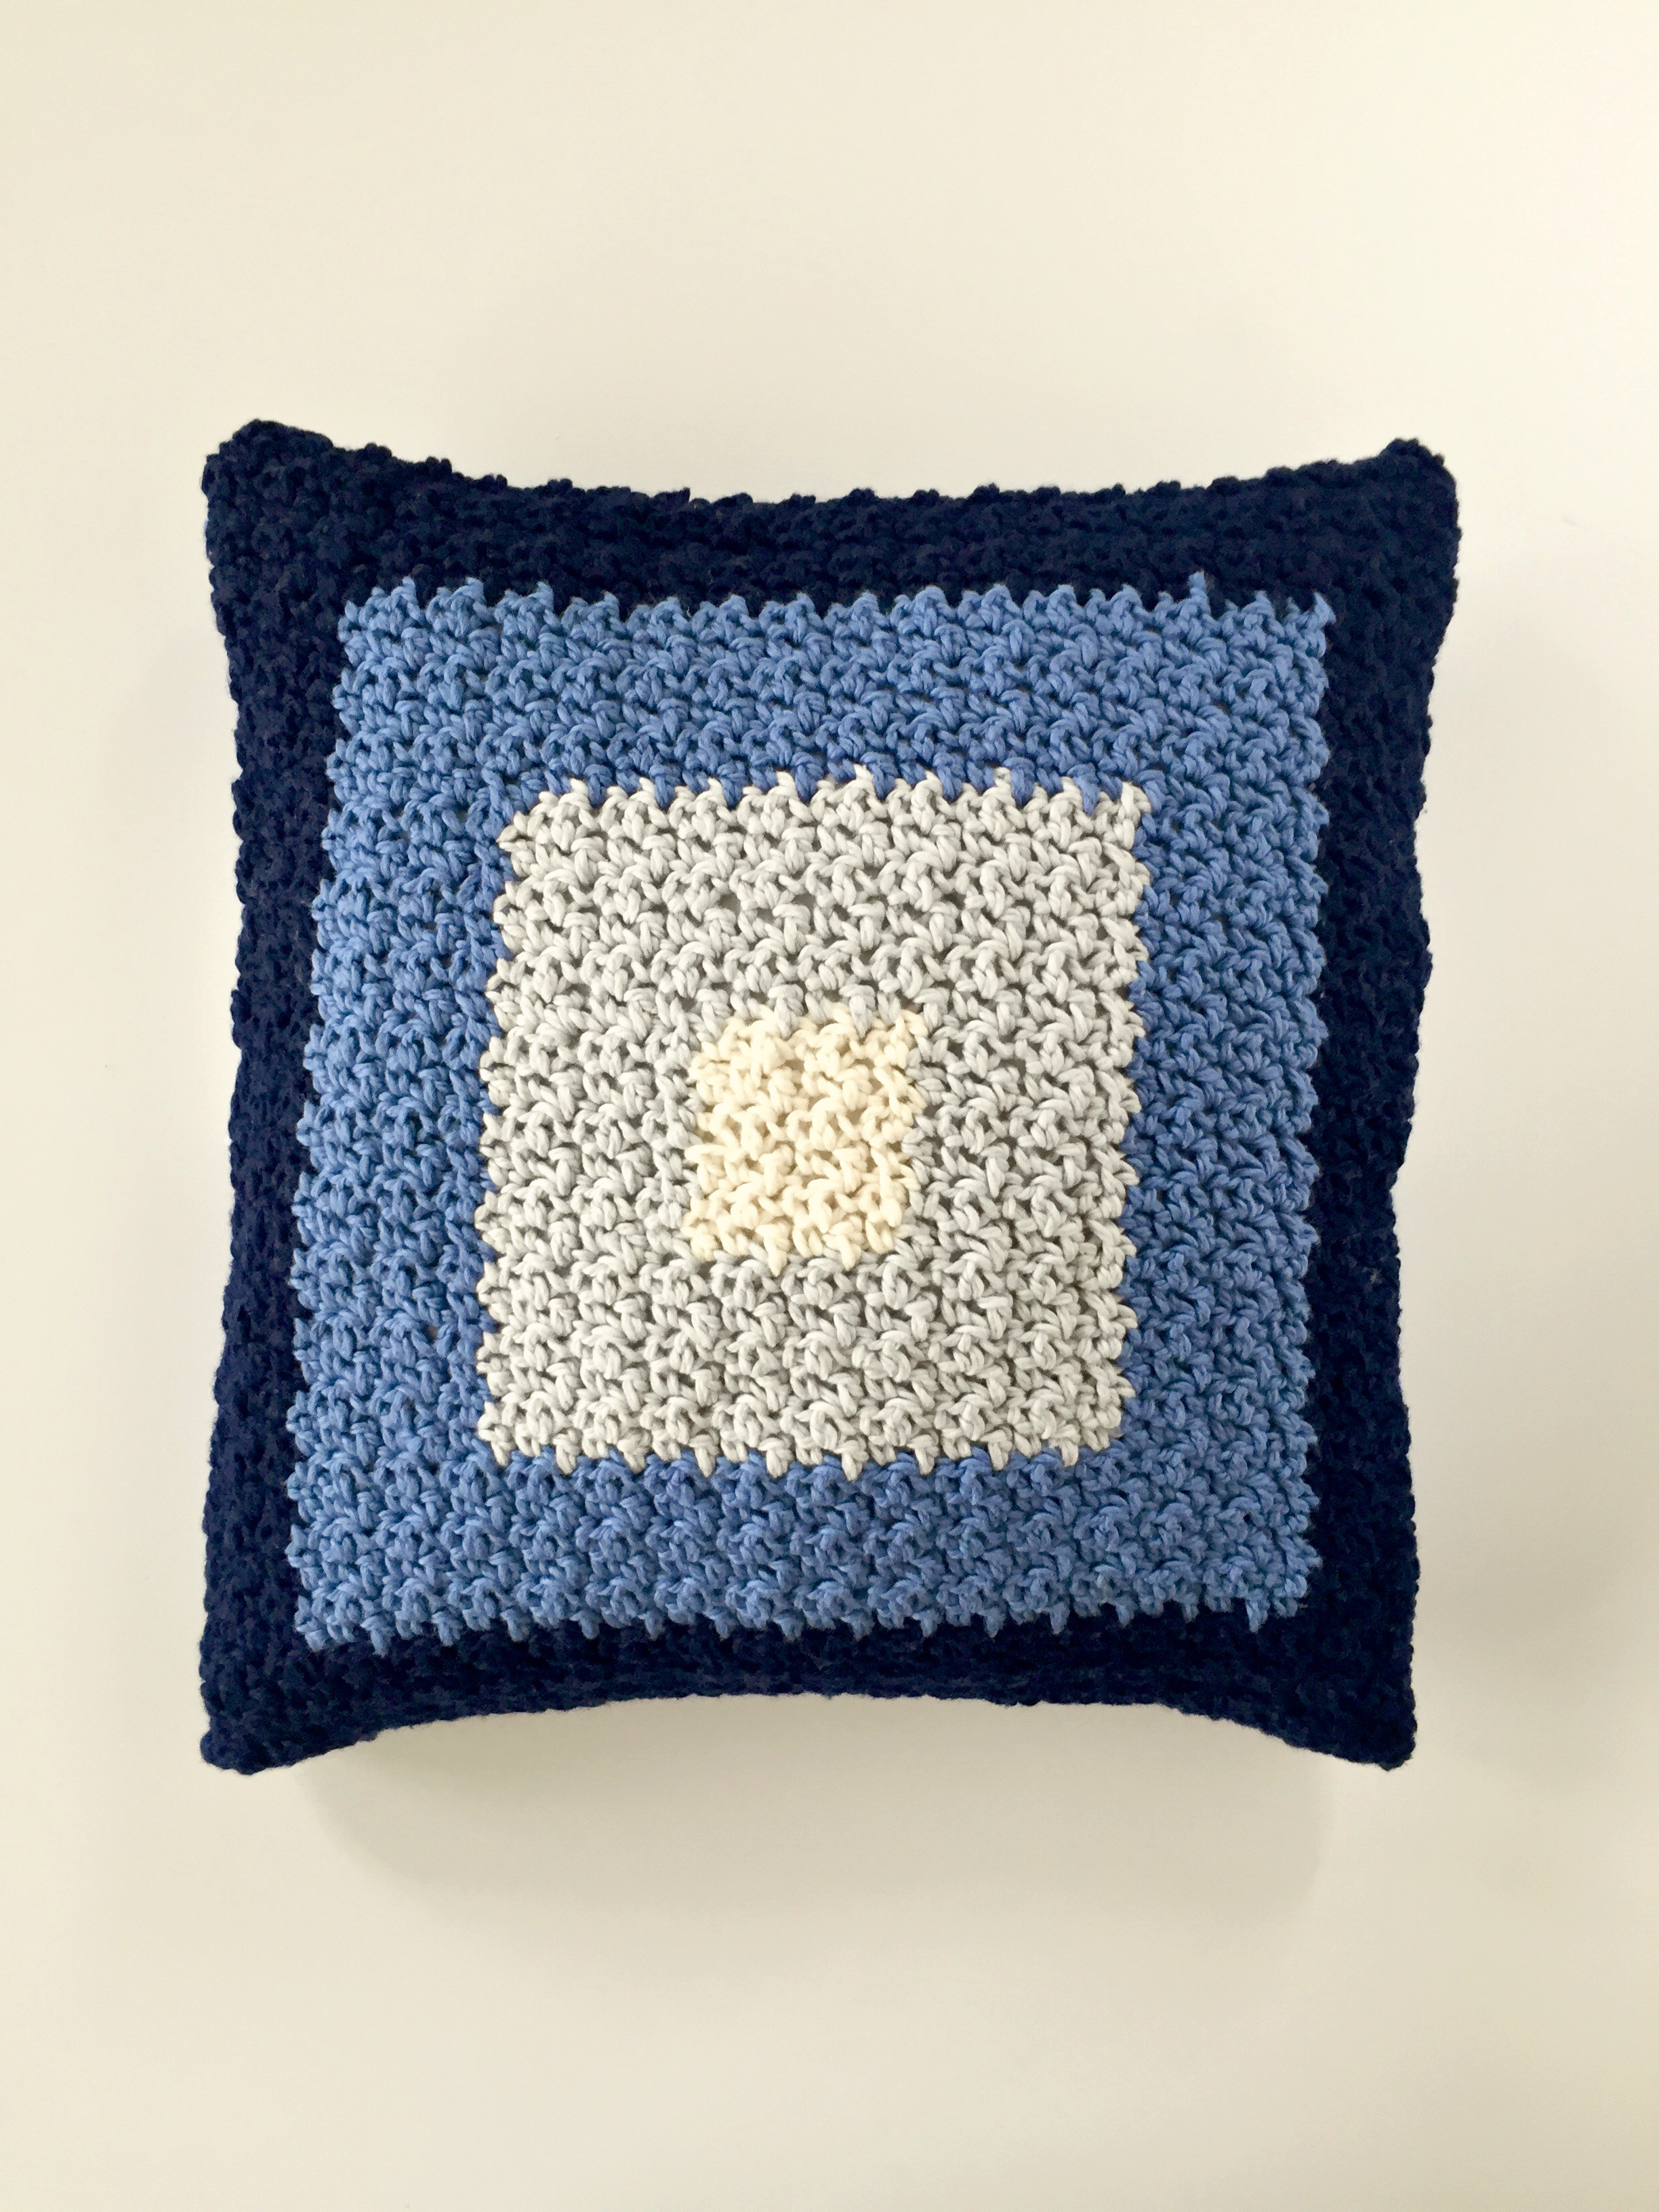 Crochet Pillow Cover Pattern New Squares Pillow Cover Crochet Pattern by Little Monkeys Design Of Lovely 47 Images Crochet Pillow Cover Pattern